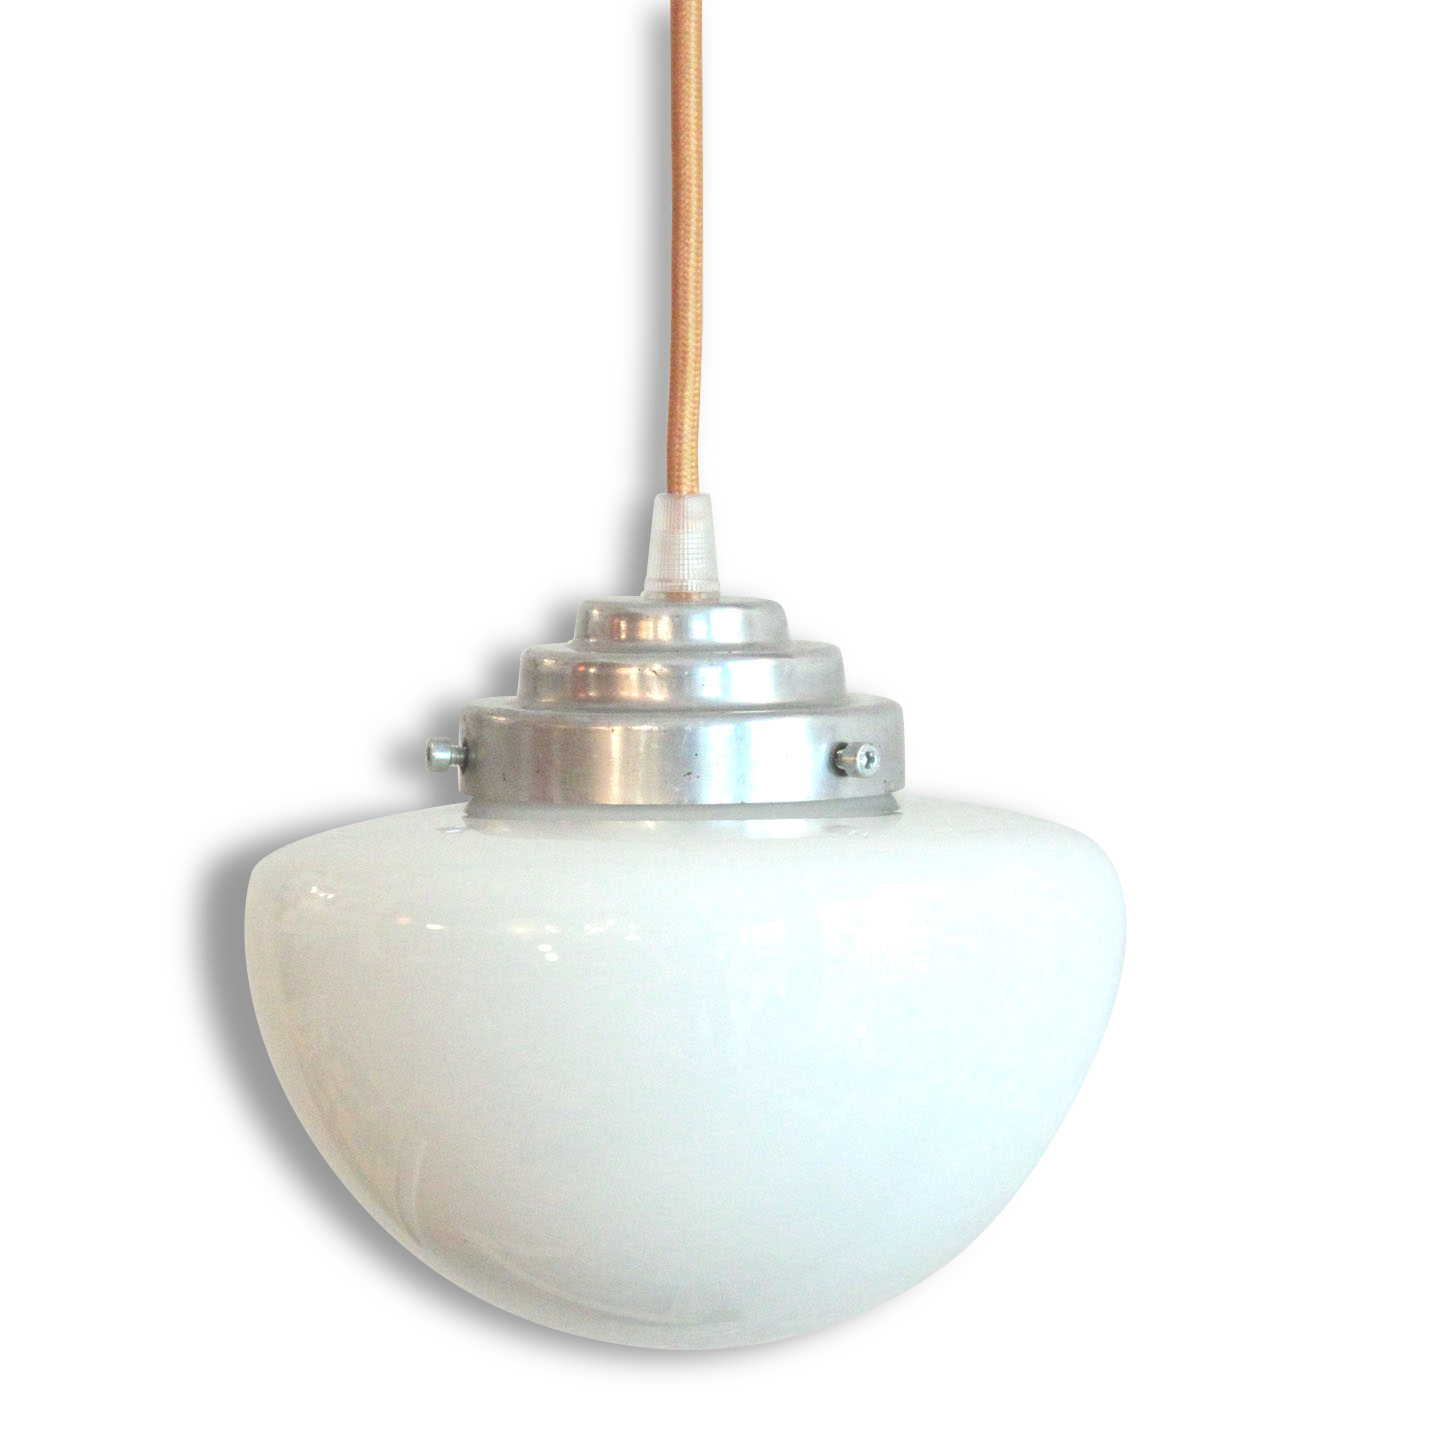 Suspension Luminaire Originale Amazing Interesting Decor De Chambre